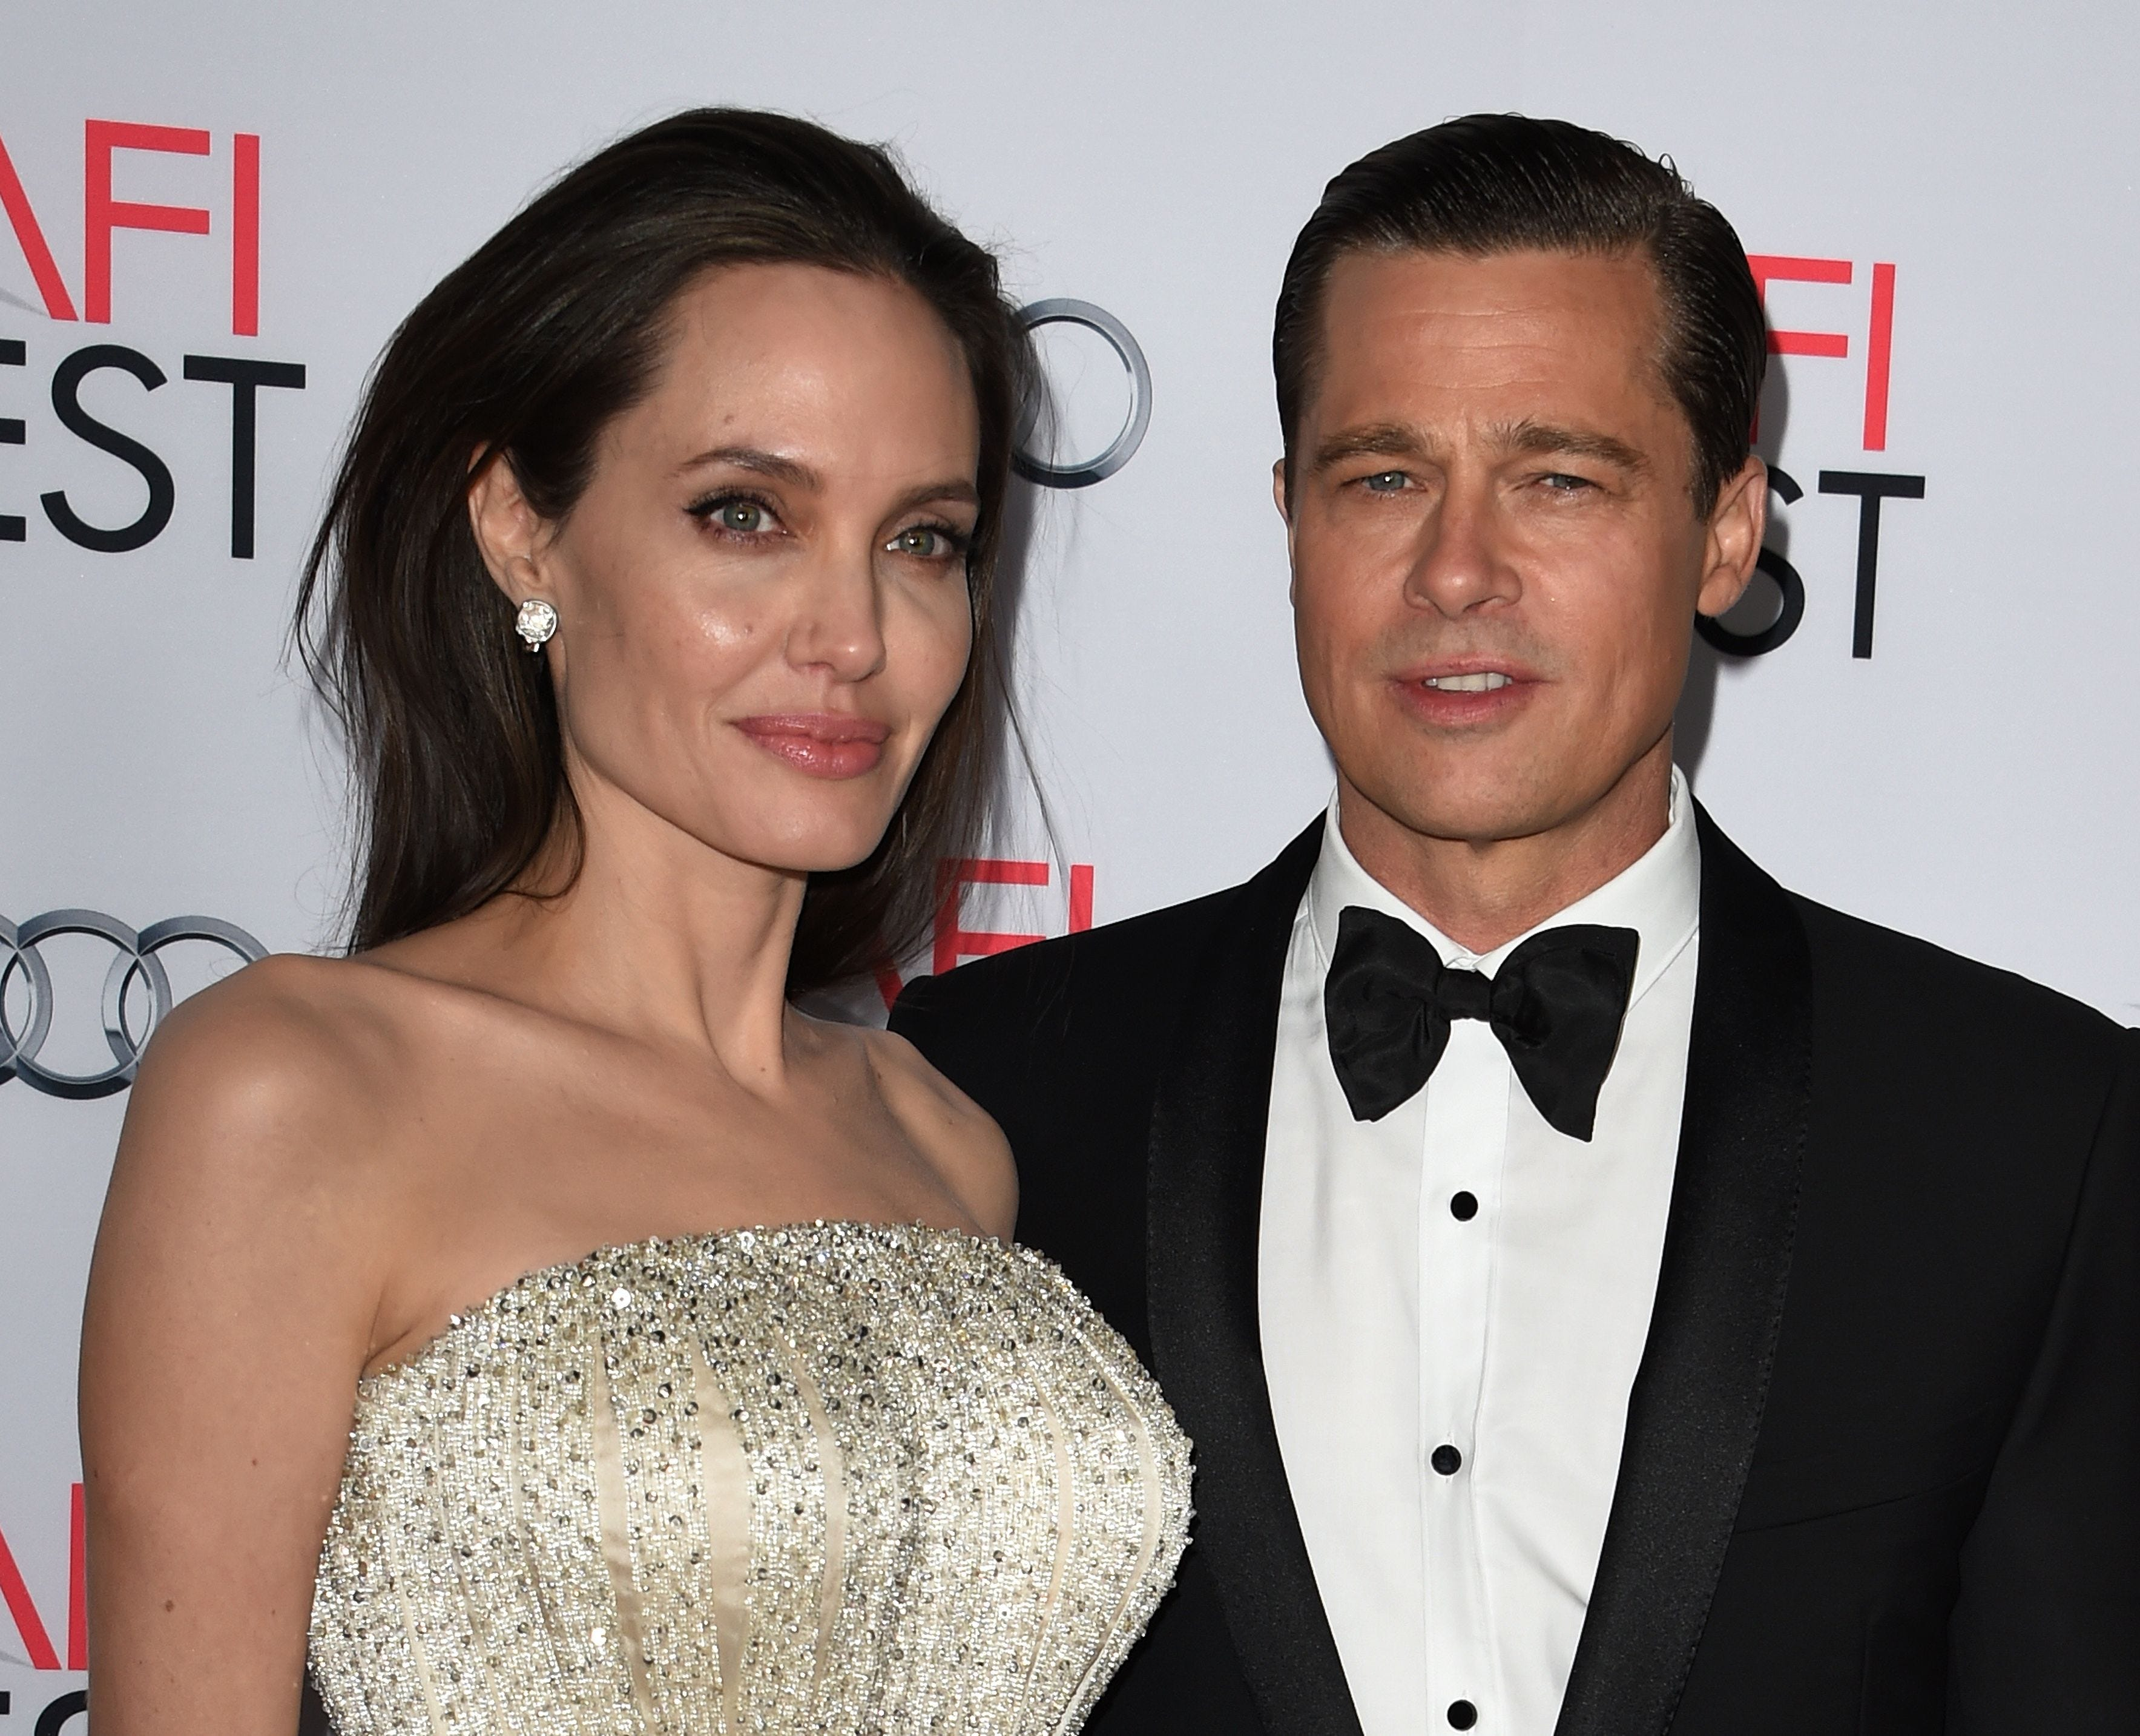 Angelina jolie tits for her divorce - 2019 year